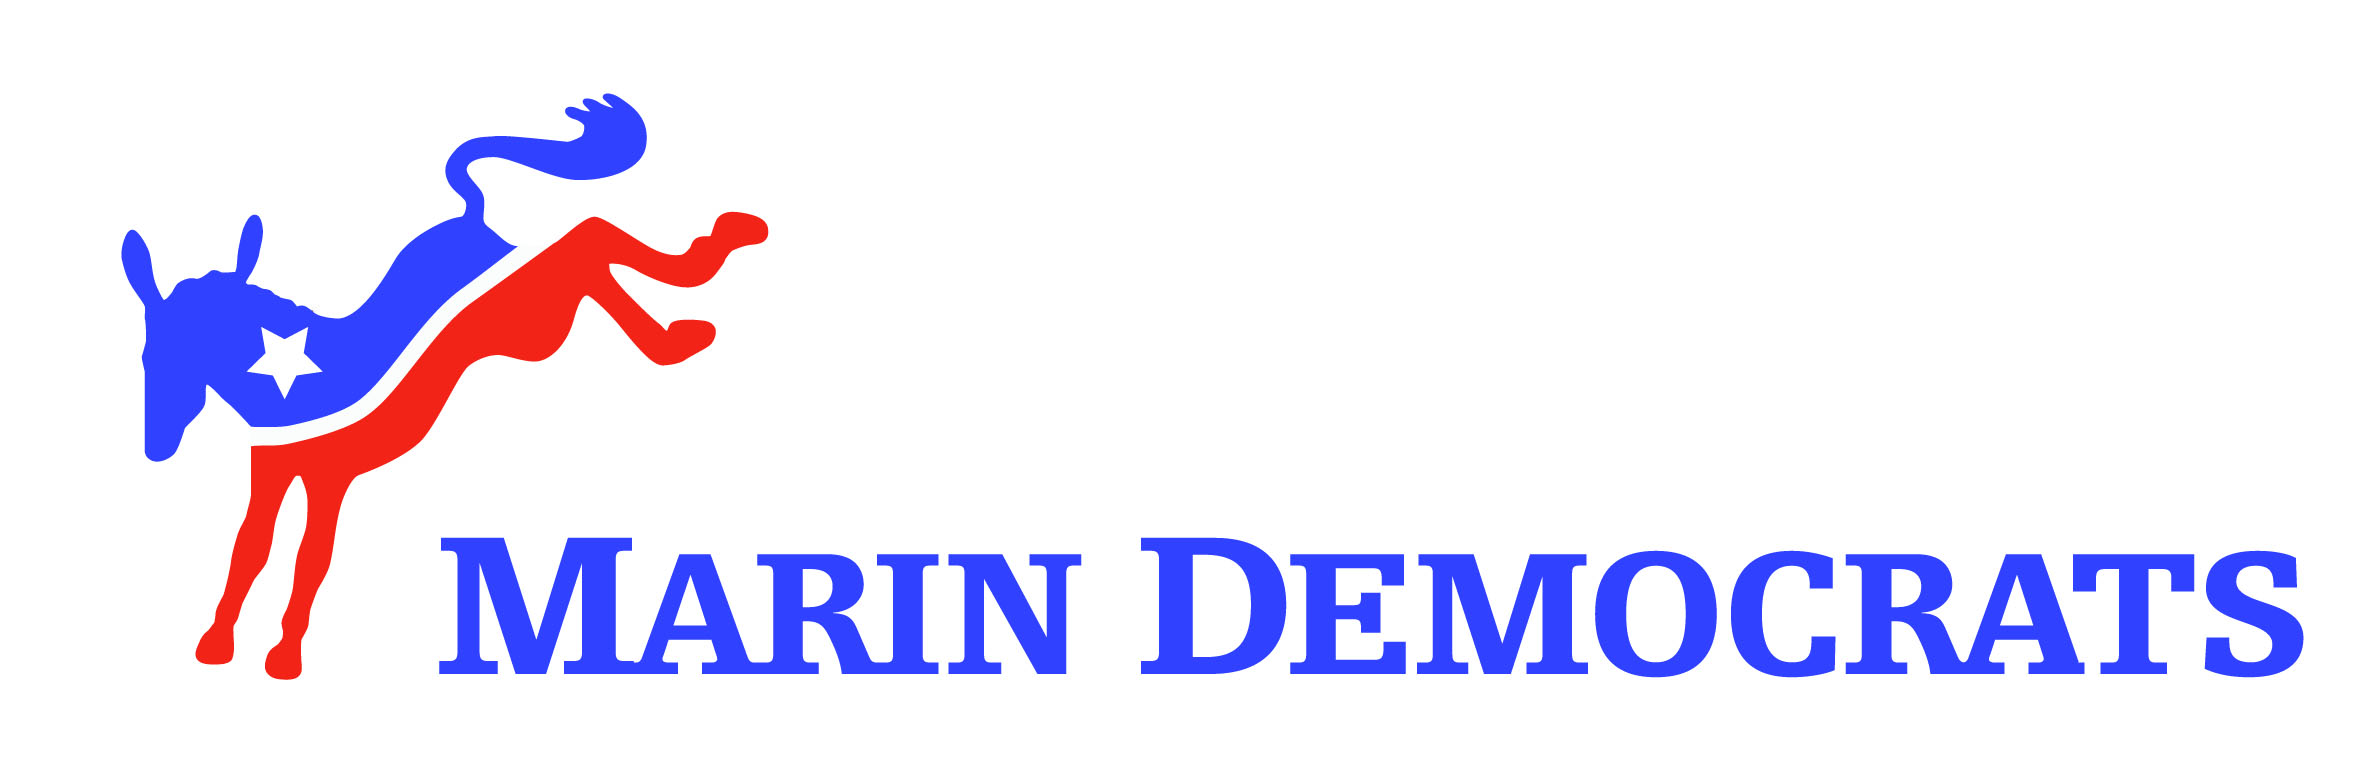 Democratic Central Committee of Marin-Federal